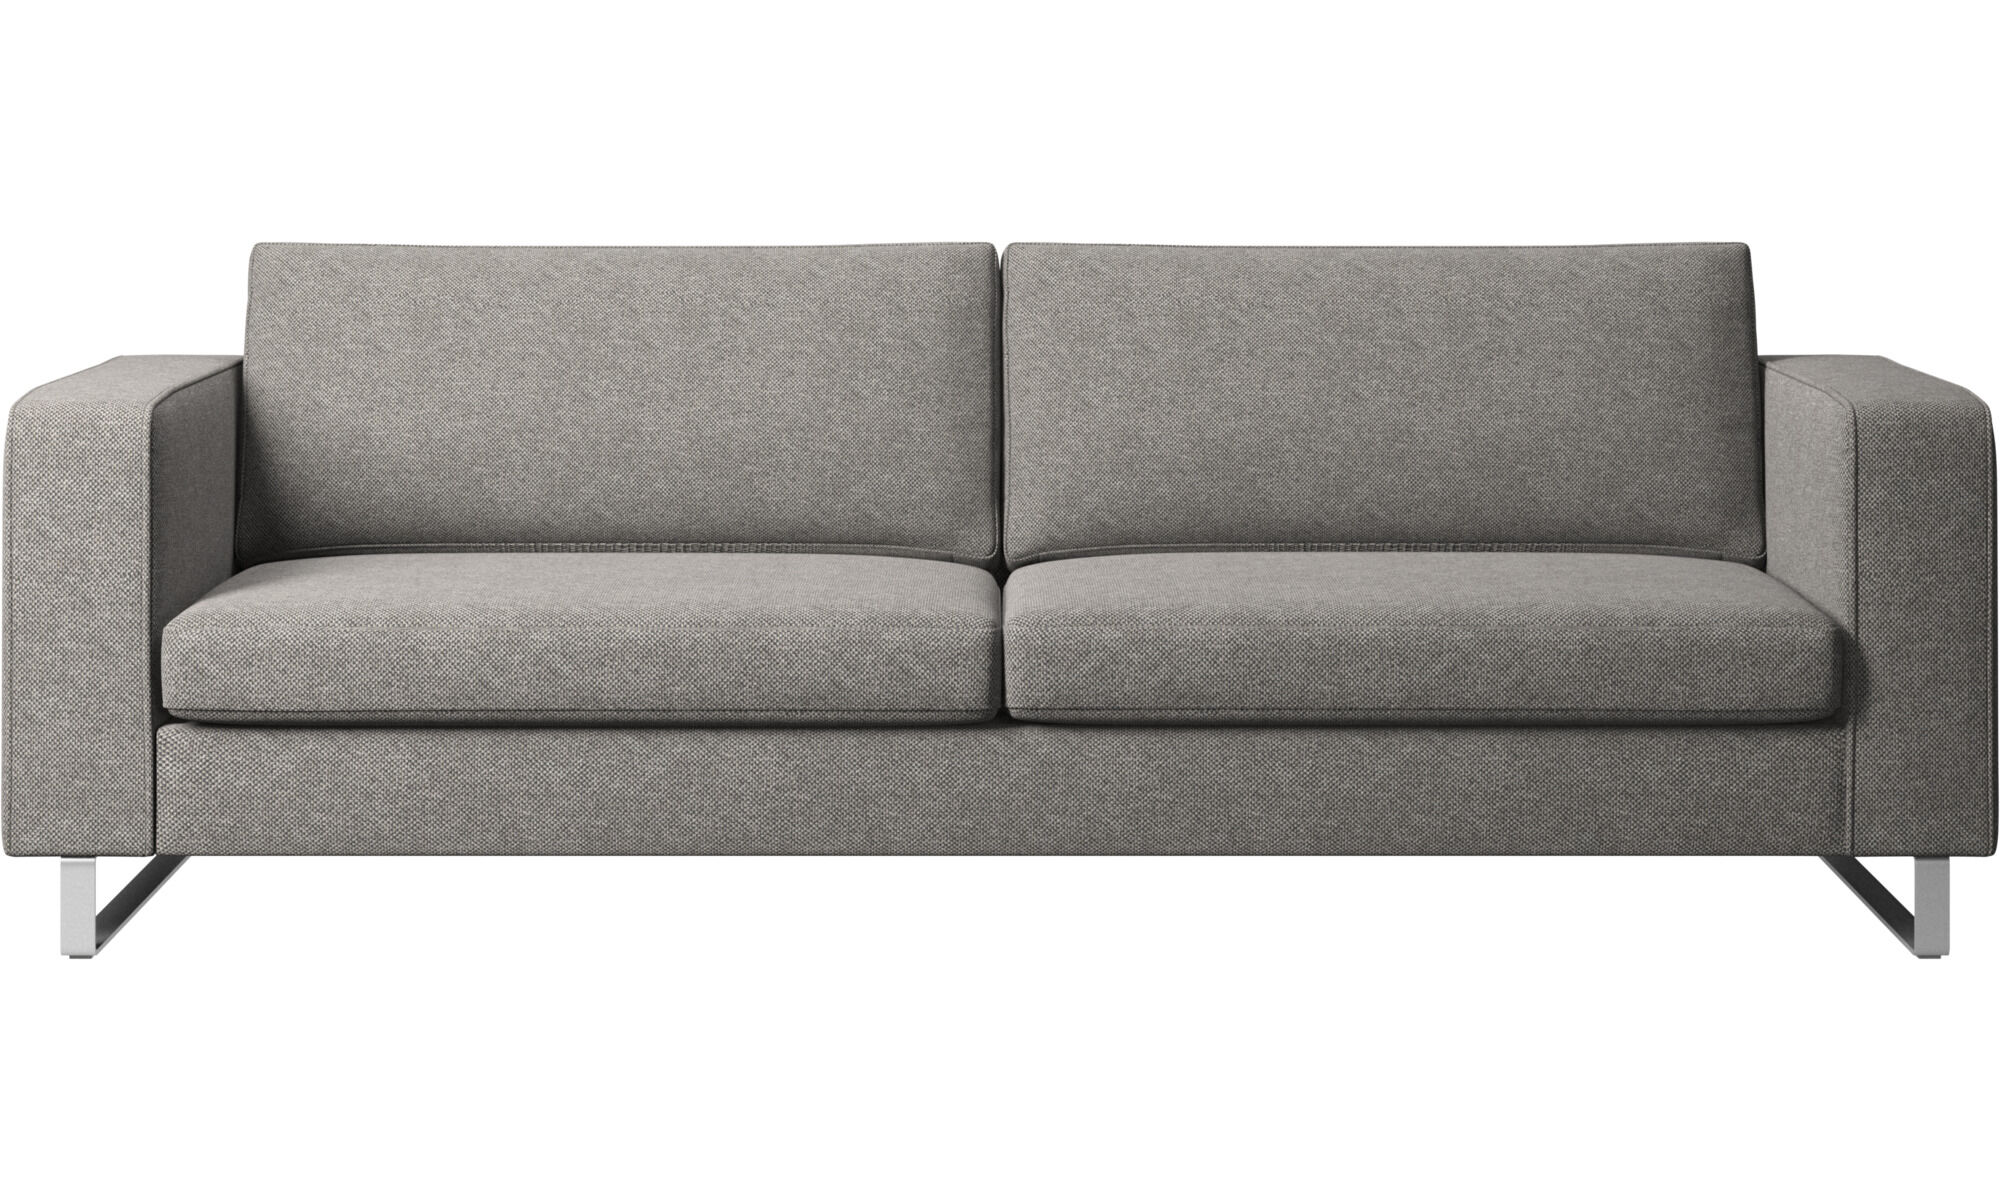 Delicieux 3 Seater Sofas   Indivi 2 Sofa   Gray   Fabric